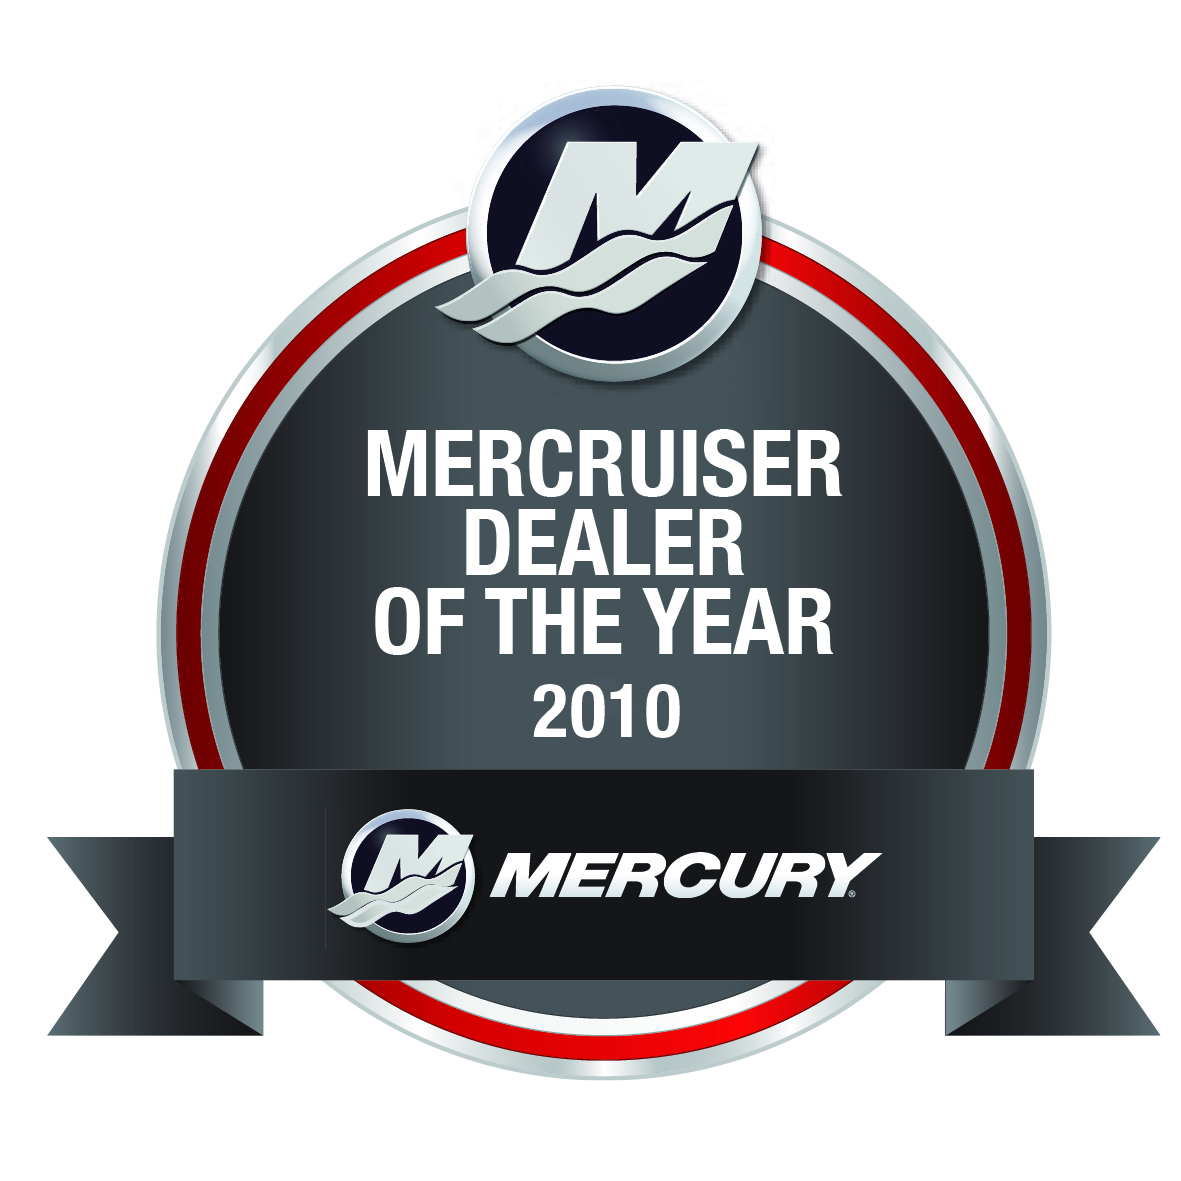 Mercruiser Dealer of the Year Hitech Marine 2008